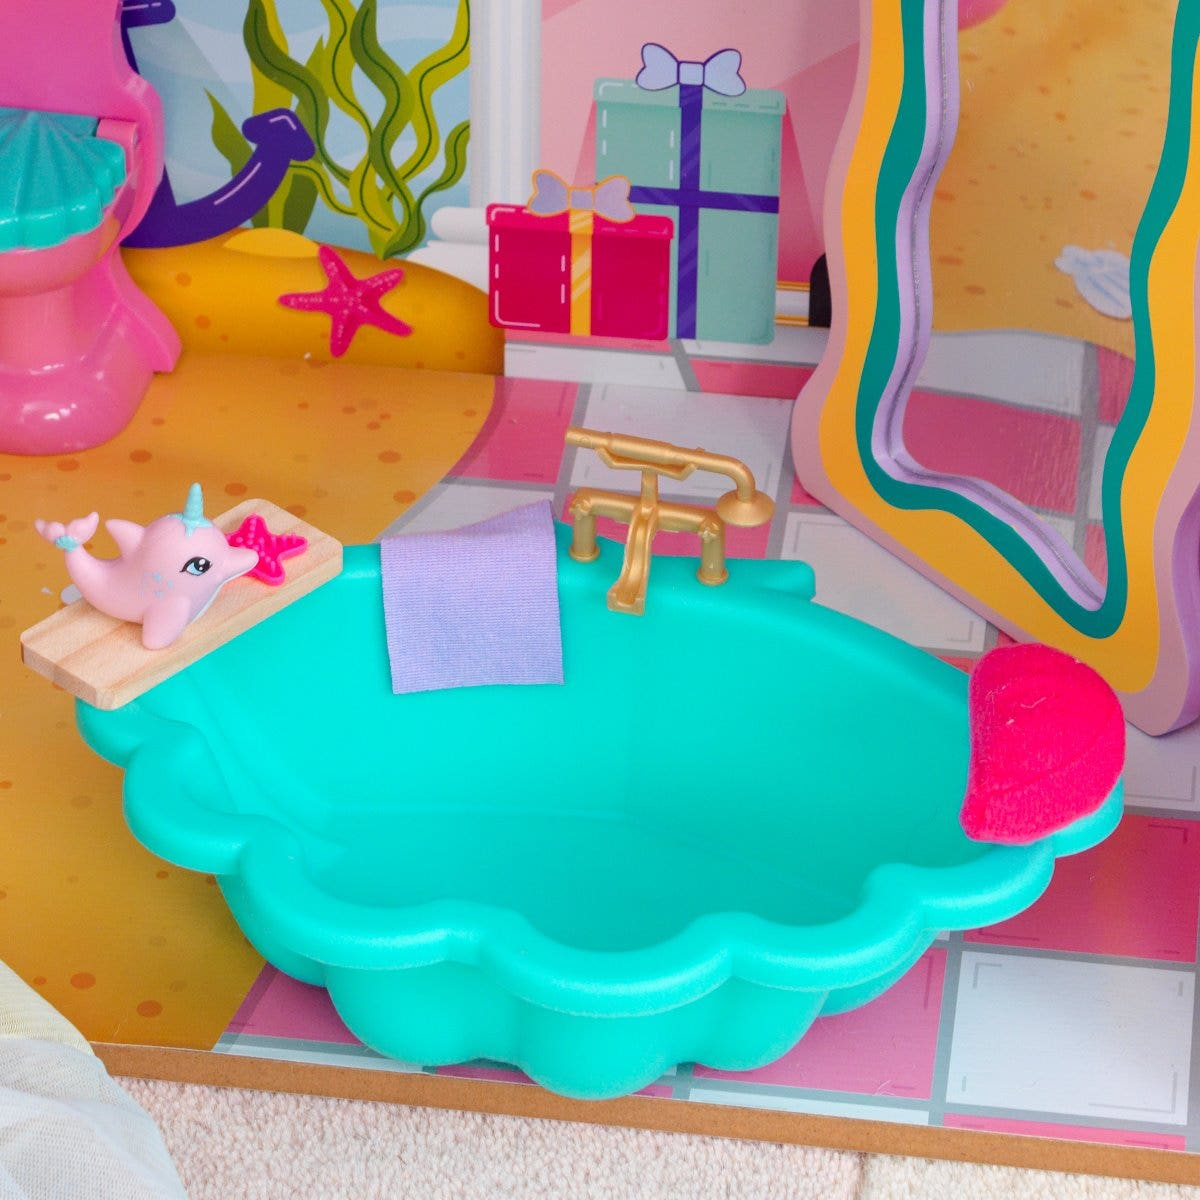 Shell-tastic Design: Graceful wavy, sea-shaped pieces with magical colors brighten up any doll play.